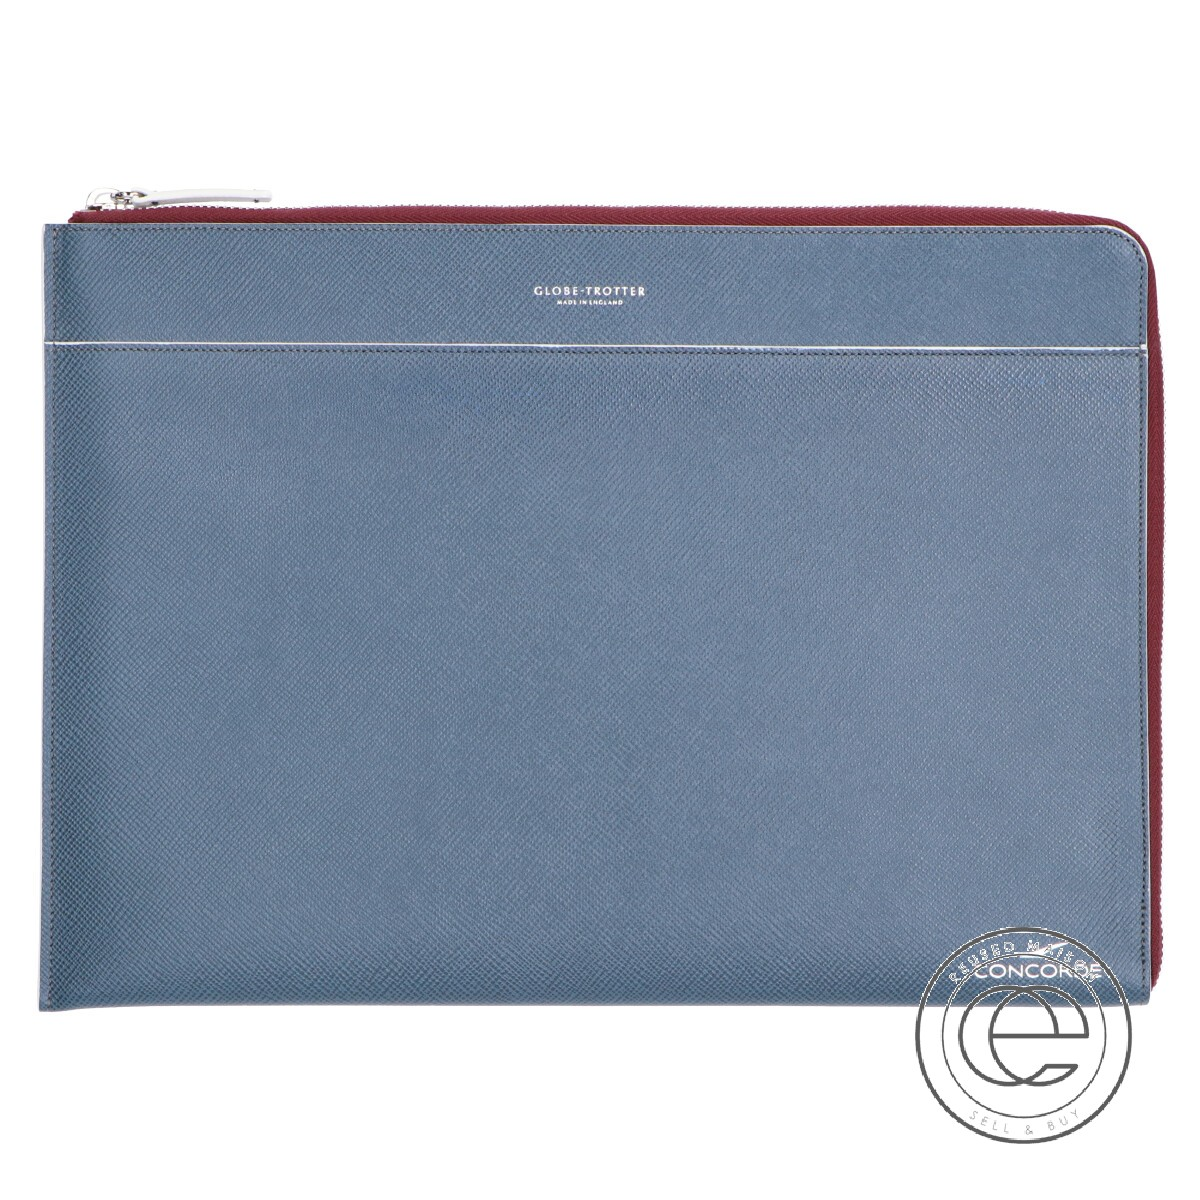 Globe trotter グローブ・トロッター JT-DOC-C2-A4WG CONCORDE JET A4 DOCUMENT HOLDER コンコルド就航40周年記念 ジェット ドキュメントケース クラッチバッグ ネイビー メンズ 【中古】